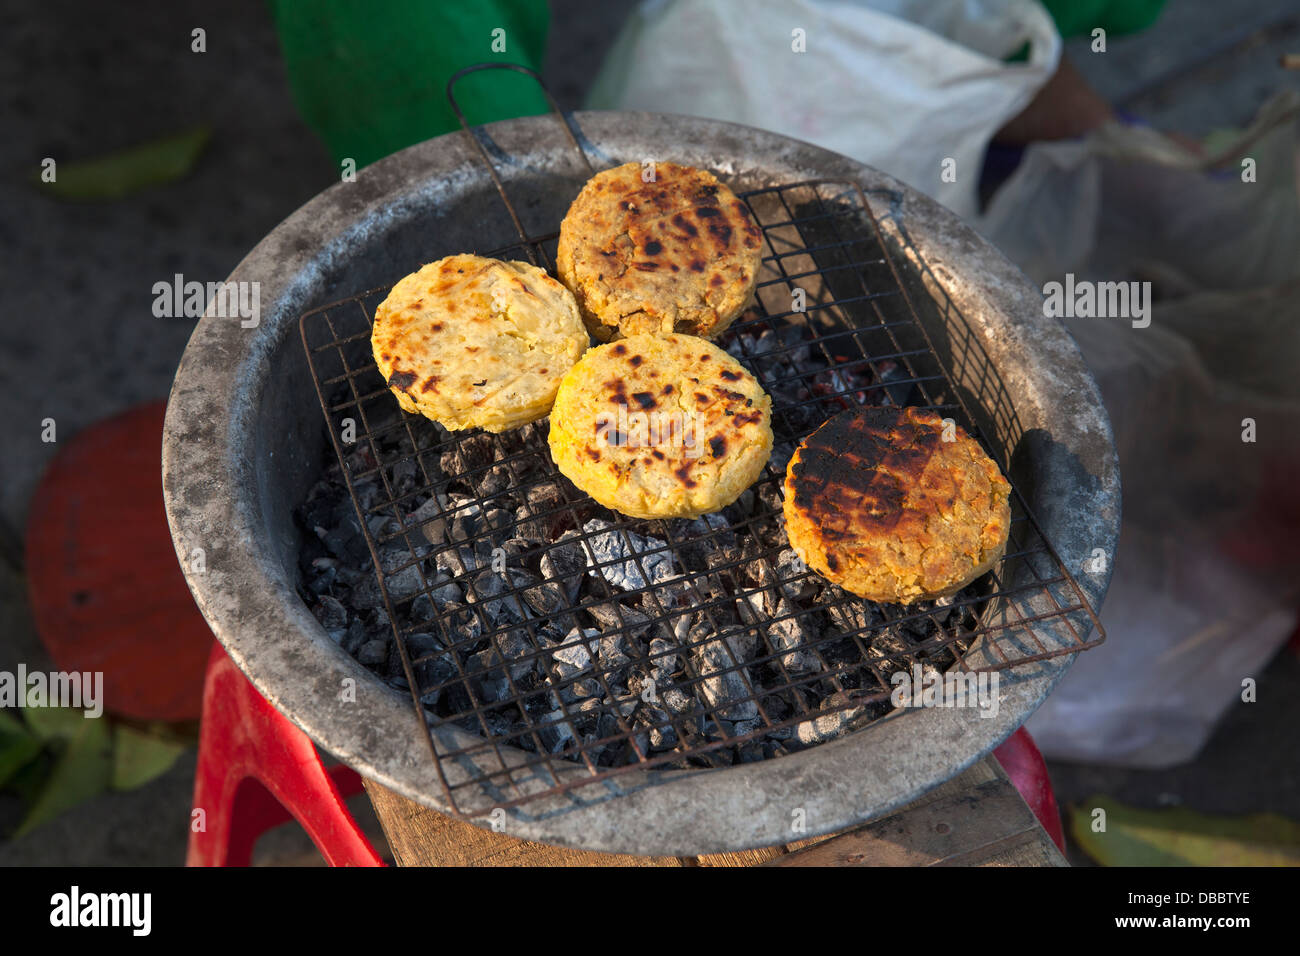 Sweet potato cakes grilling outside on street in Old Quarter, Hoi An, Quang Nam, Vietnam, Southeast Asia - Stock Image